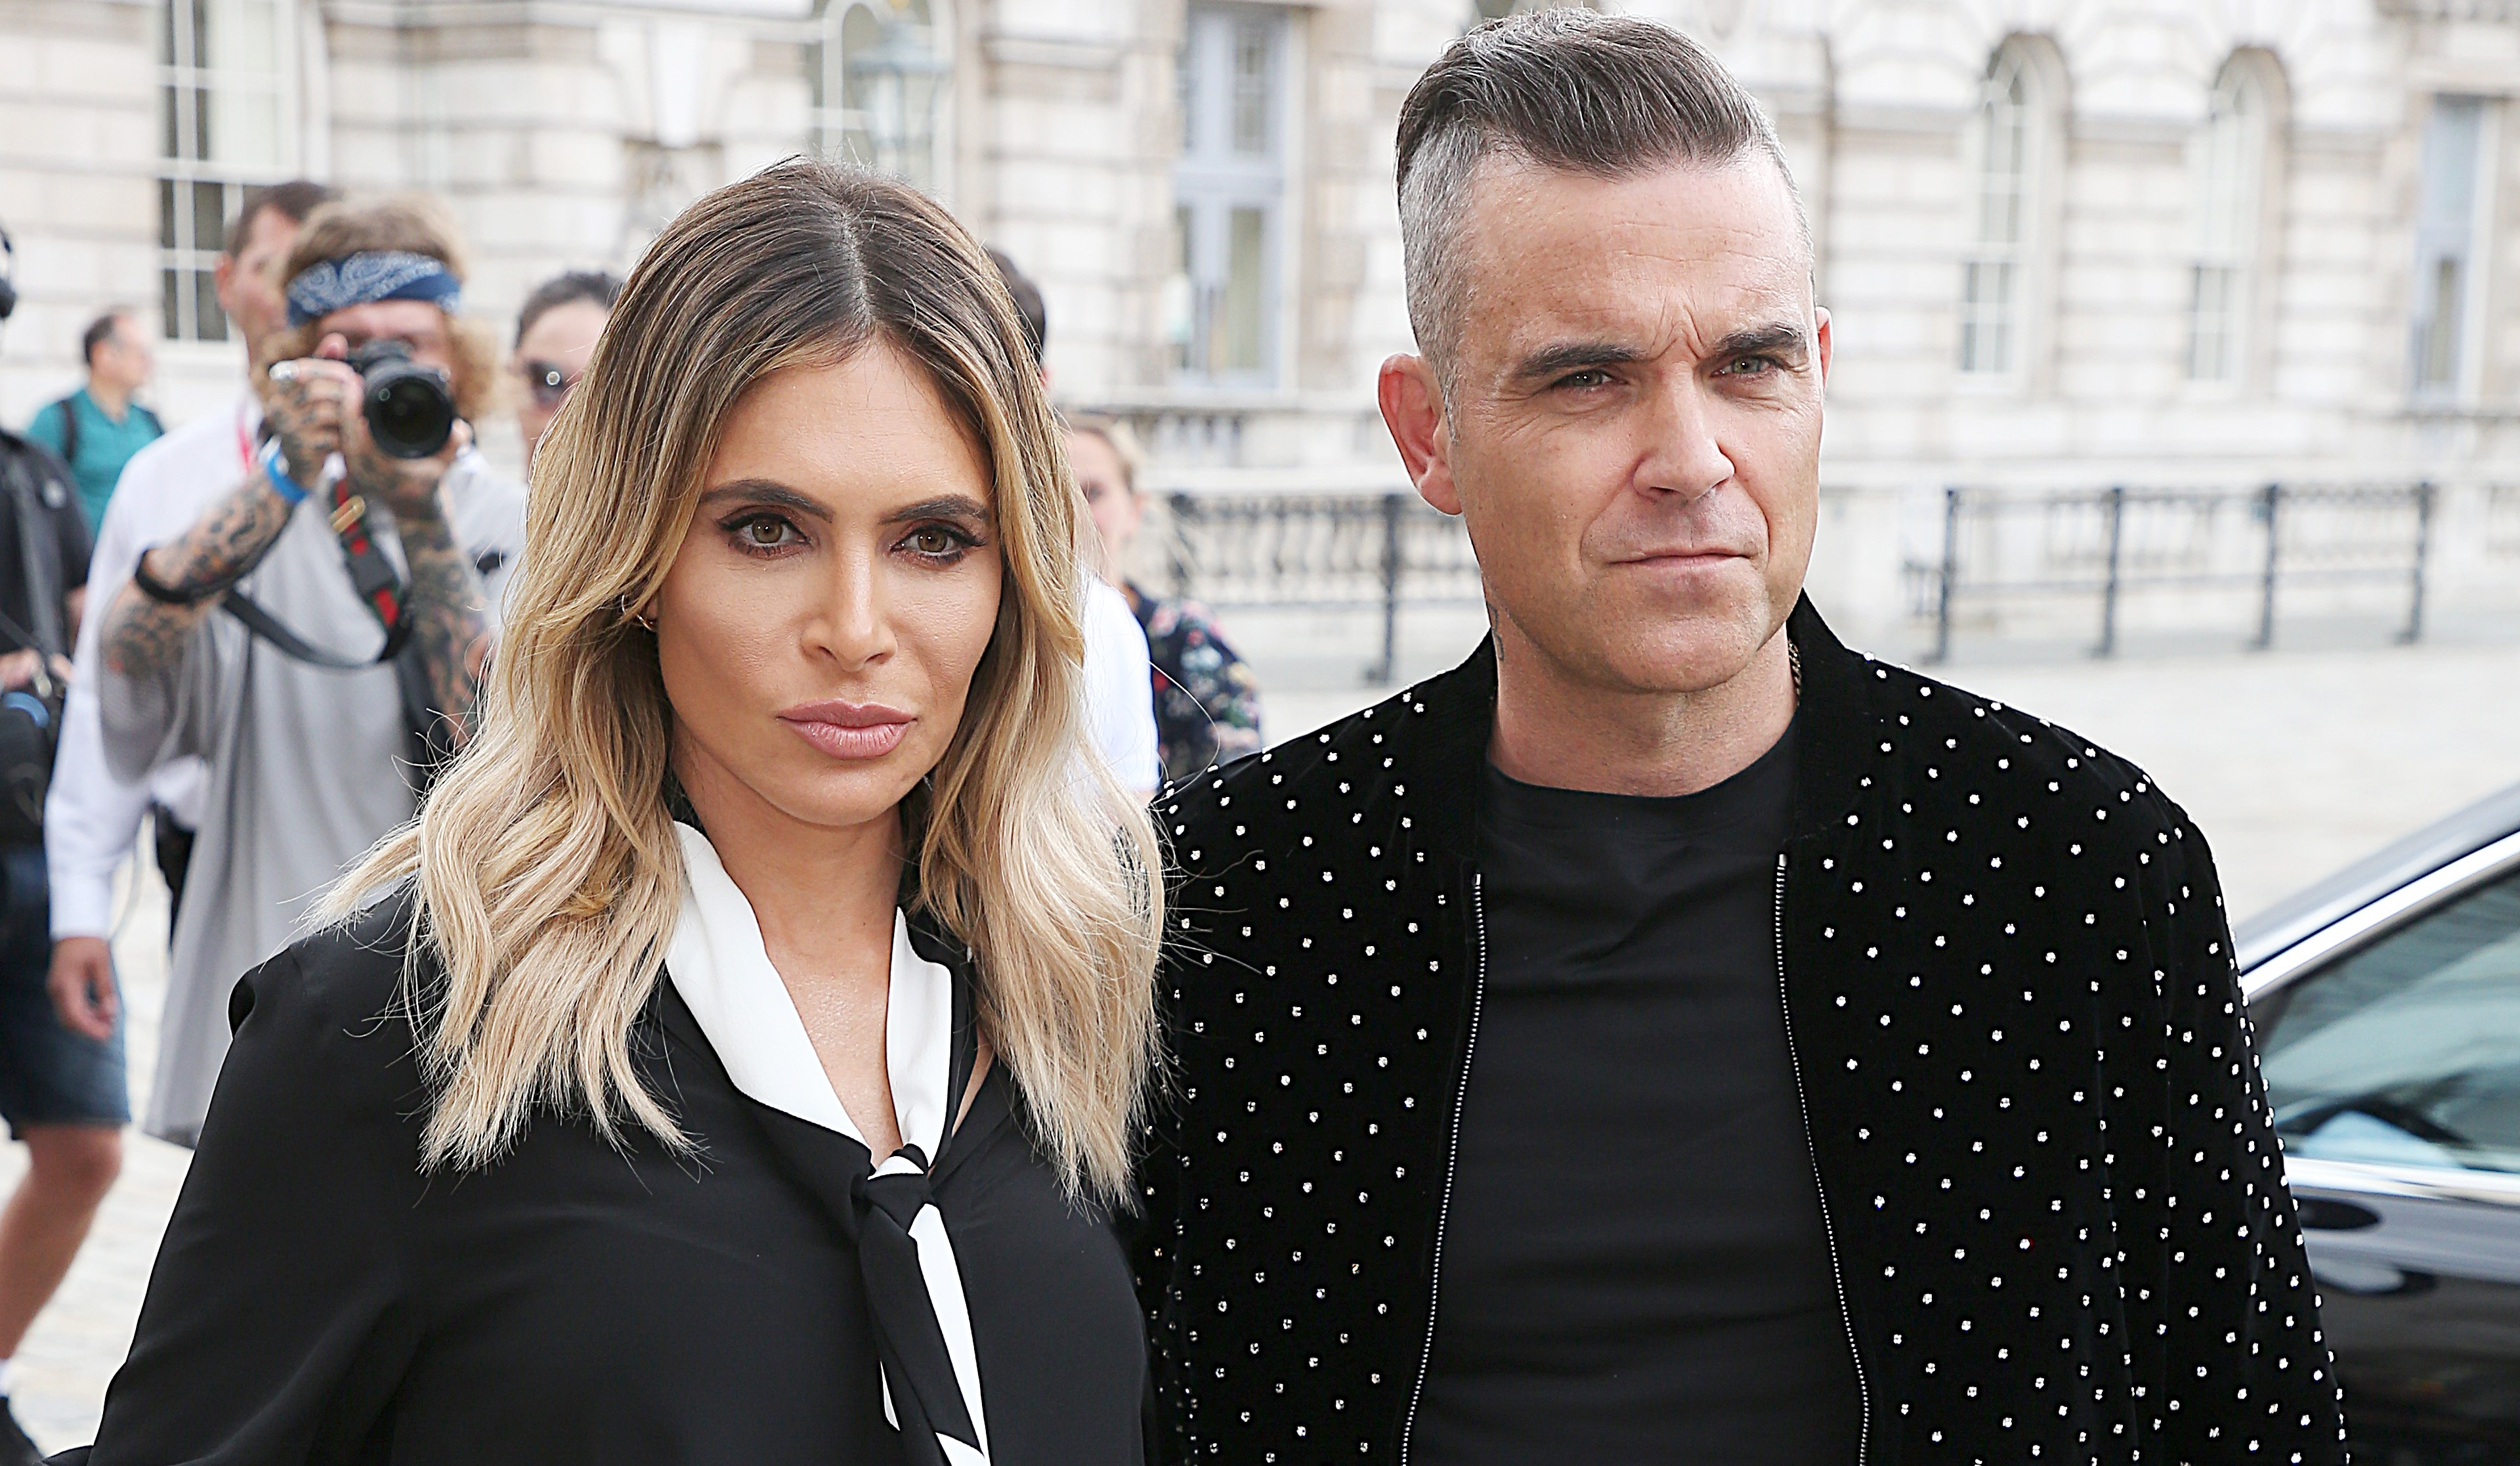 Robbie Williams & Ayda Field Quit The X Factor